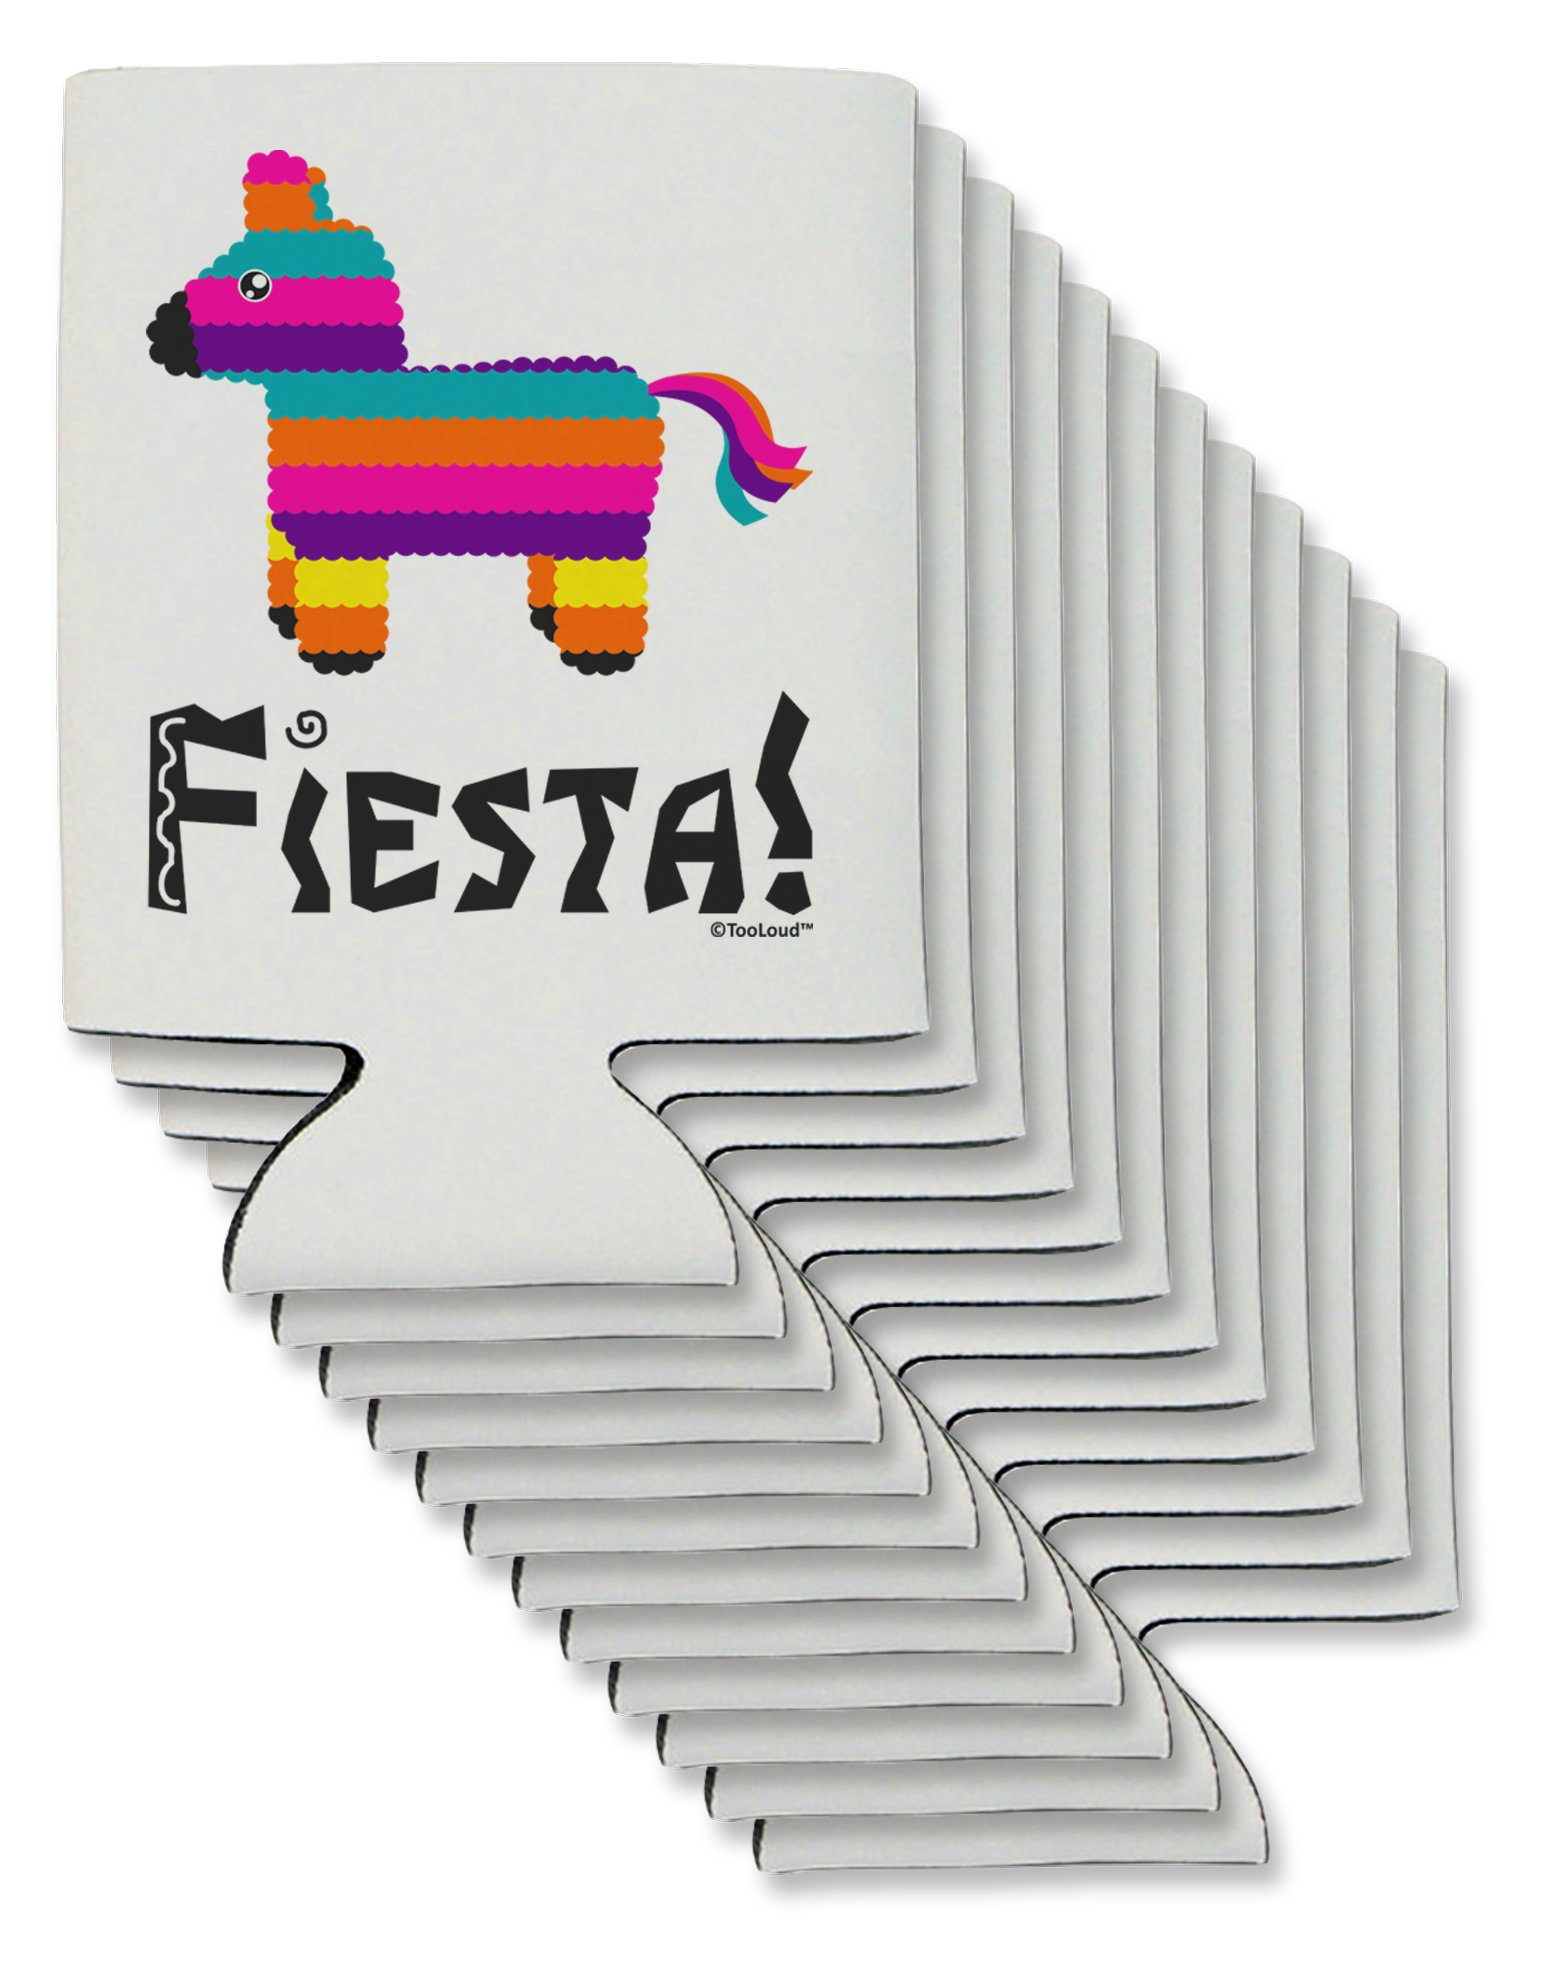 TooLoud Colorful Pinata Design - Fiesta Can/Bottle Insulator Coolers - 12 Pieces